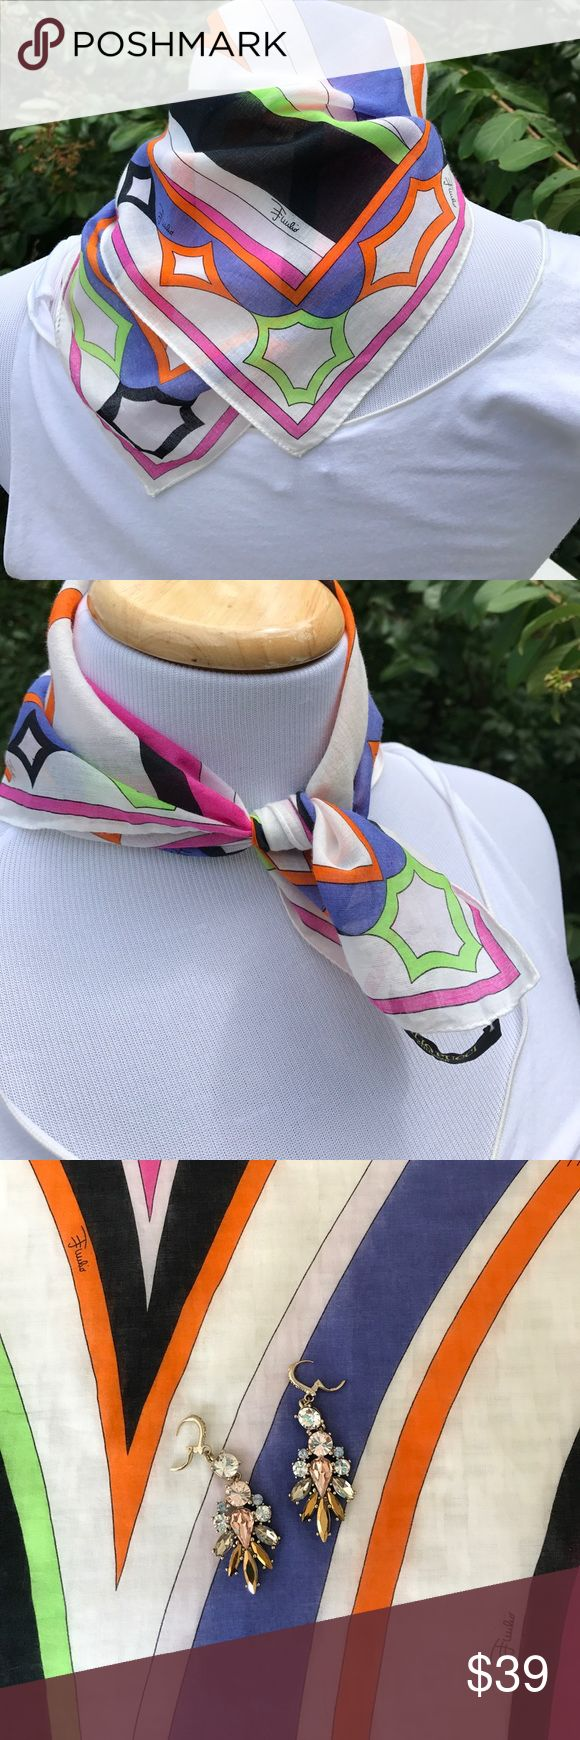 "Lovely Pucci cotton scarf The hot pastel colors are everywhere this summer in American and European clothing. This sweet Pucci 100% cotton scarf is great as a neck kerchief or tied around your wrist or handbag or you can lend it to a friend who needs a good cry. Size is 16.6 x 16.5"". EUC, no stains, spots or snags. I do not have the box but it will be appropriately packaged. Made in Italy. Emilio Pucci Accessories Scarves & Wraps"